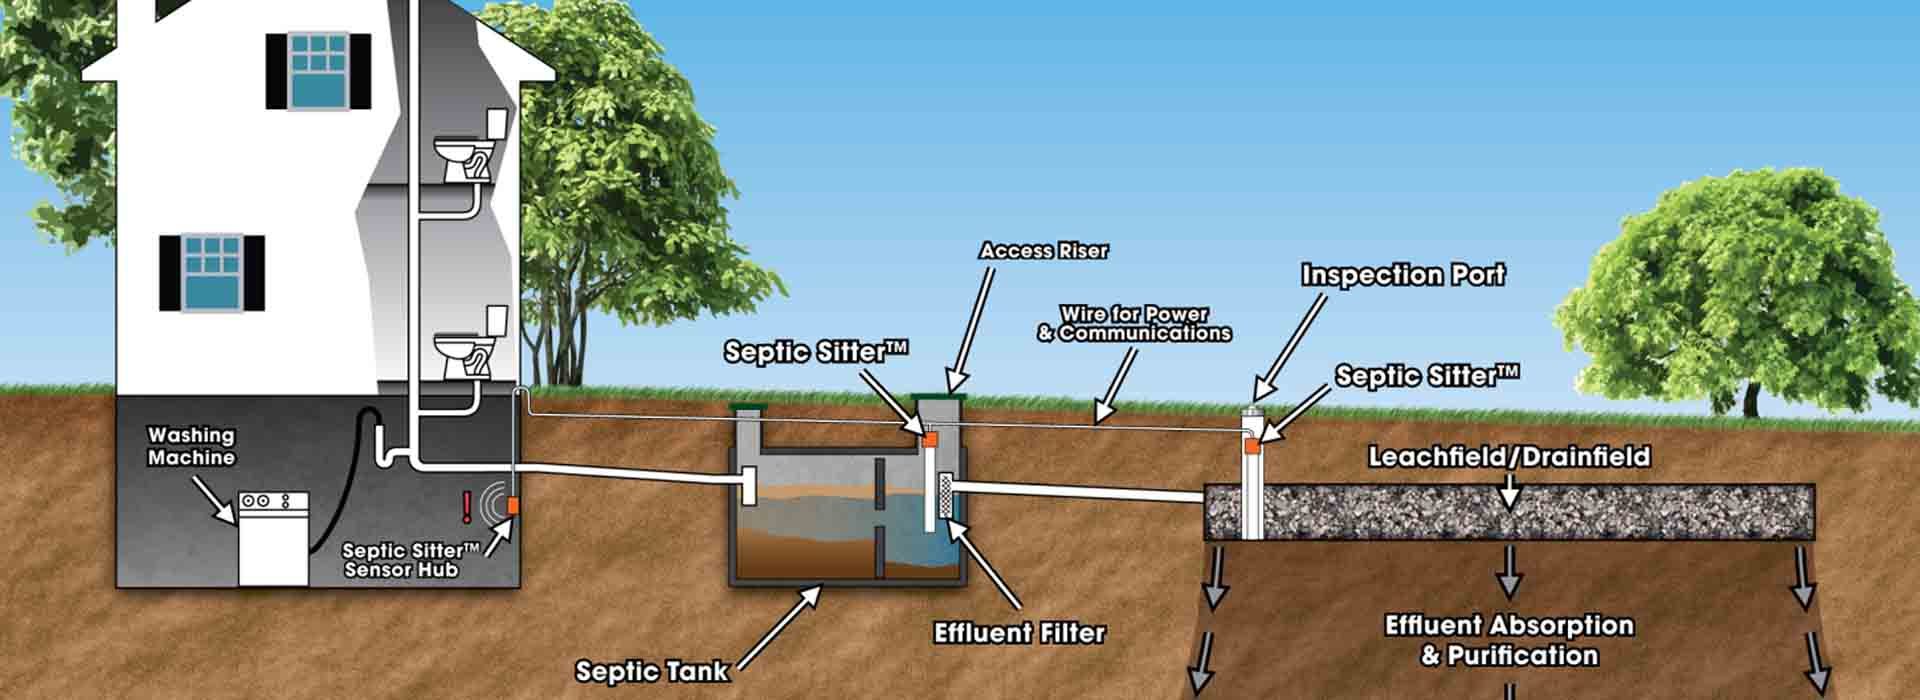 How To Clean A Septic Tank